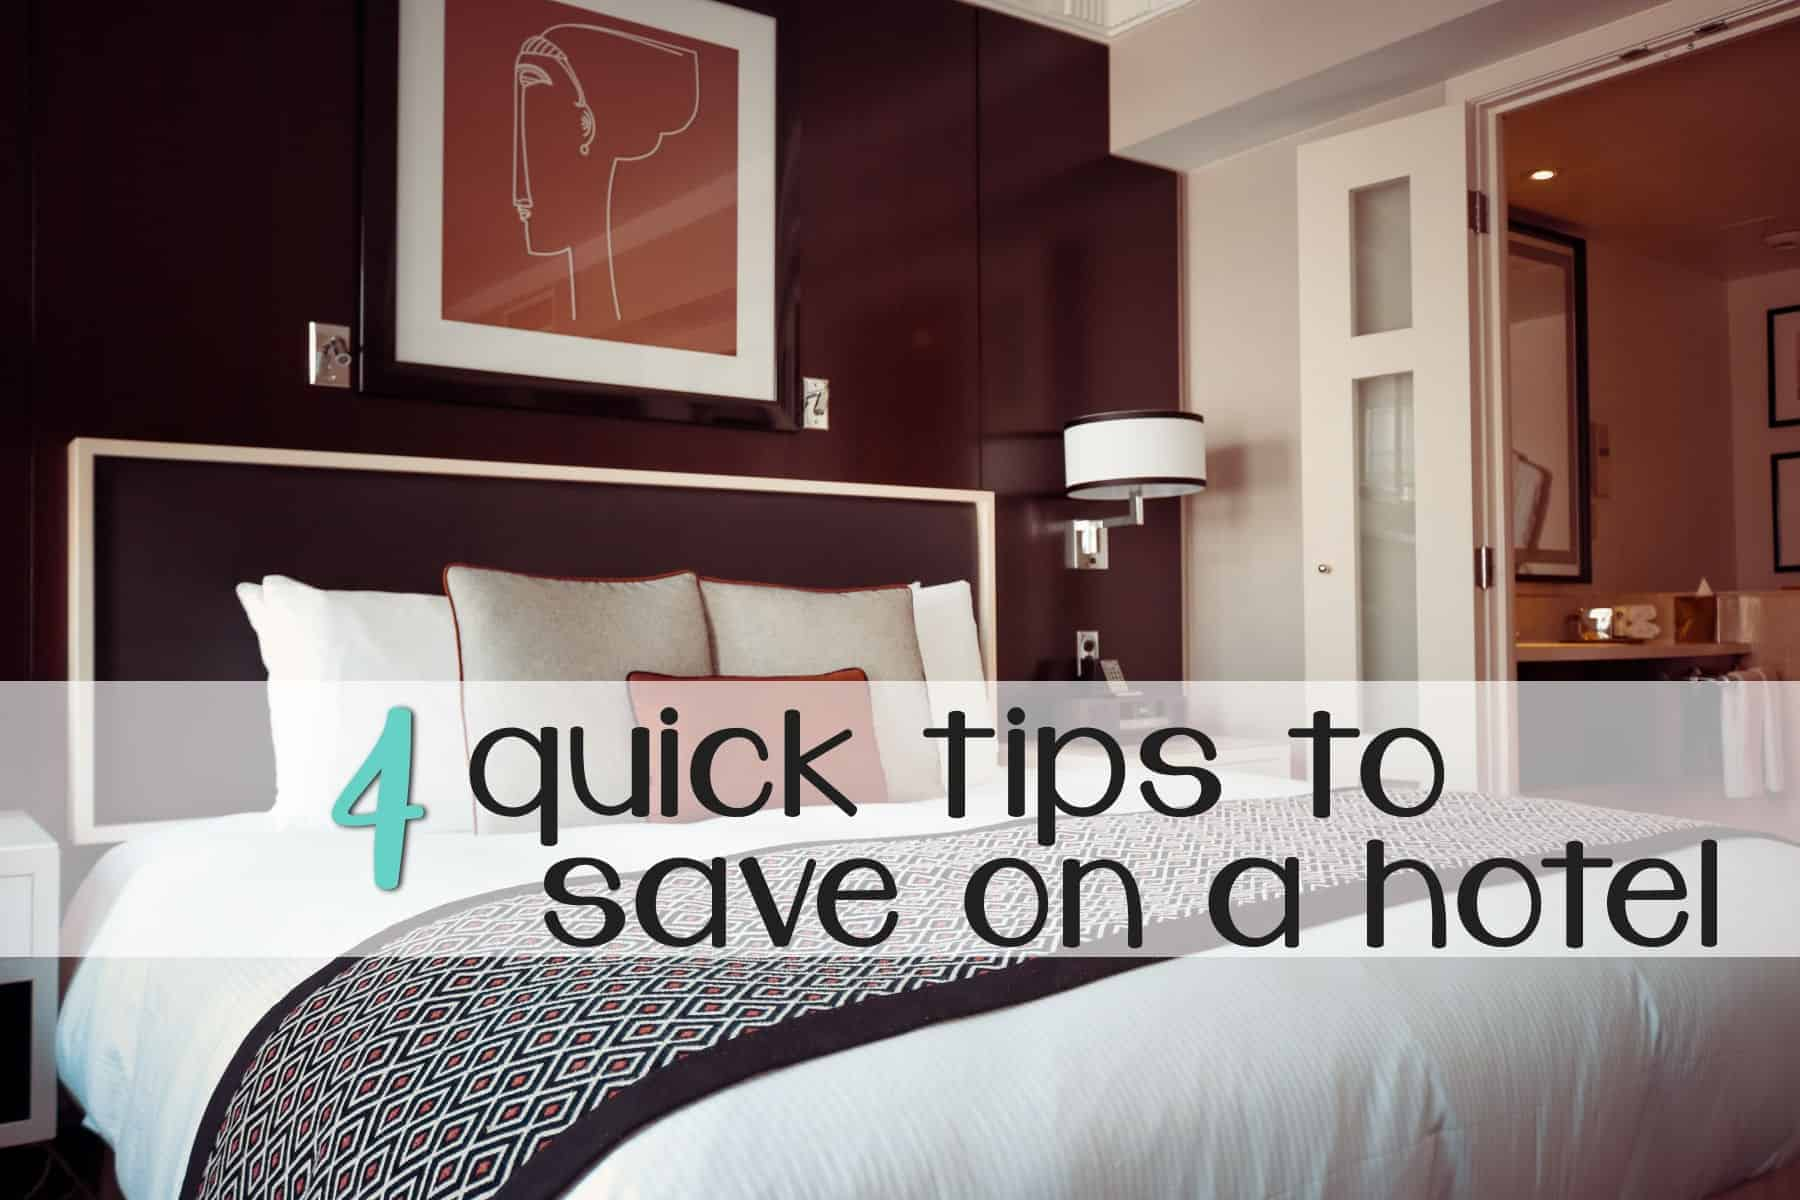 4 Quick Tips to Save on a Hotel